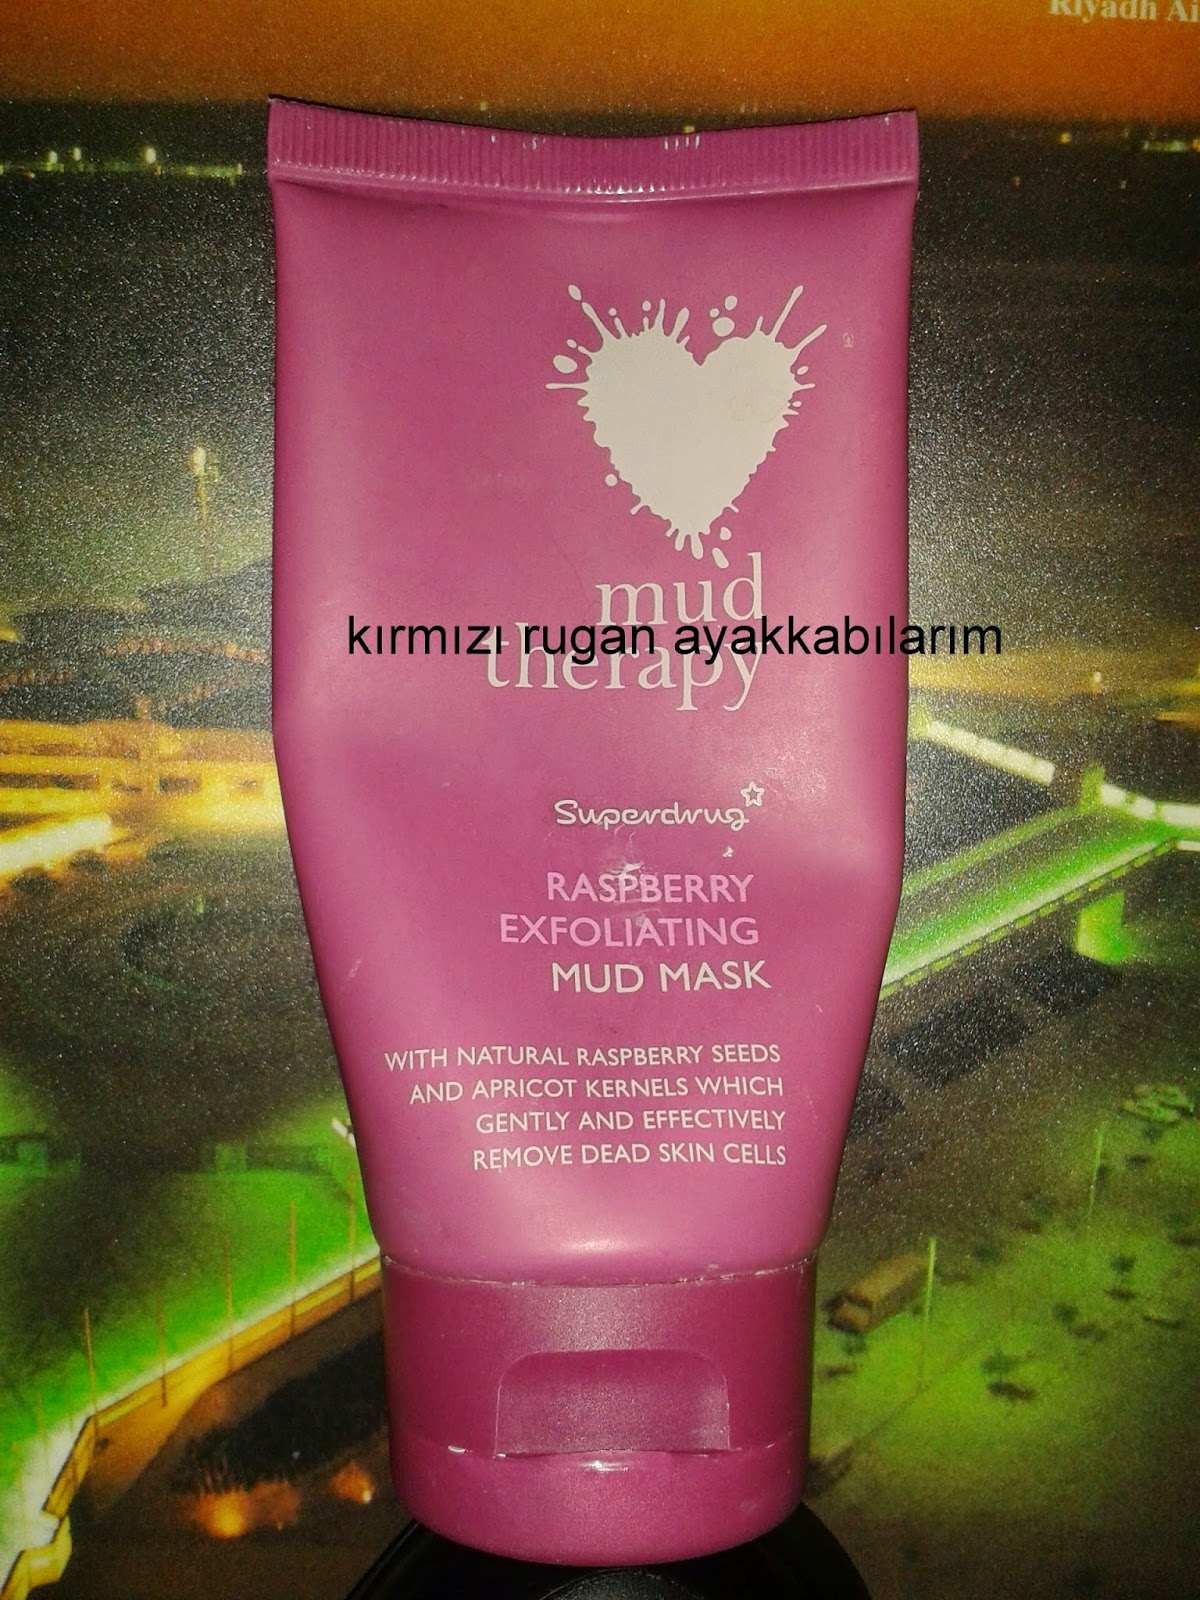 superdrug maskeler(raspberry-witch hazel)